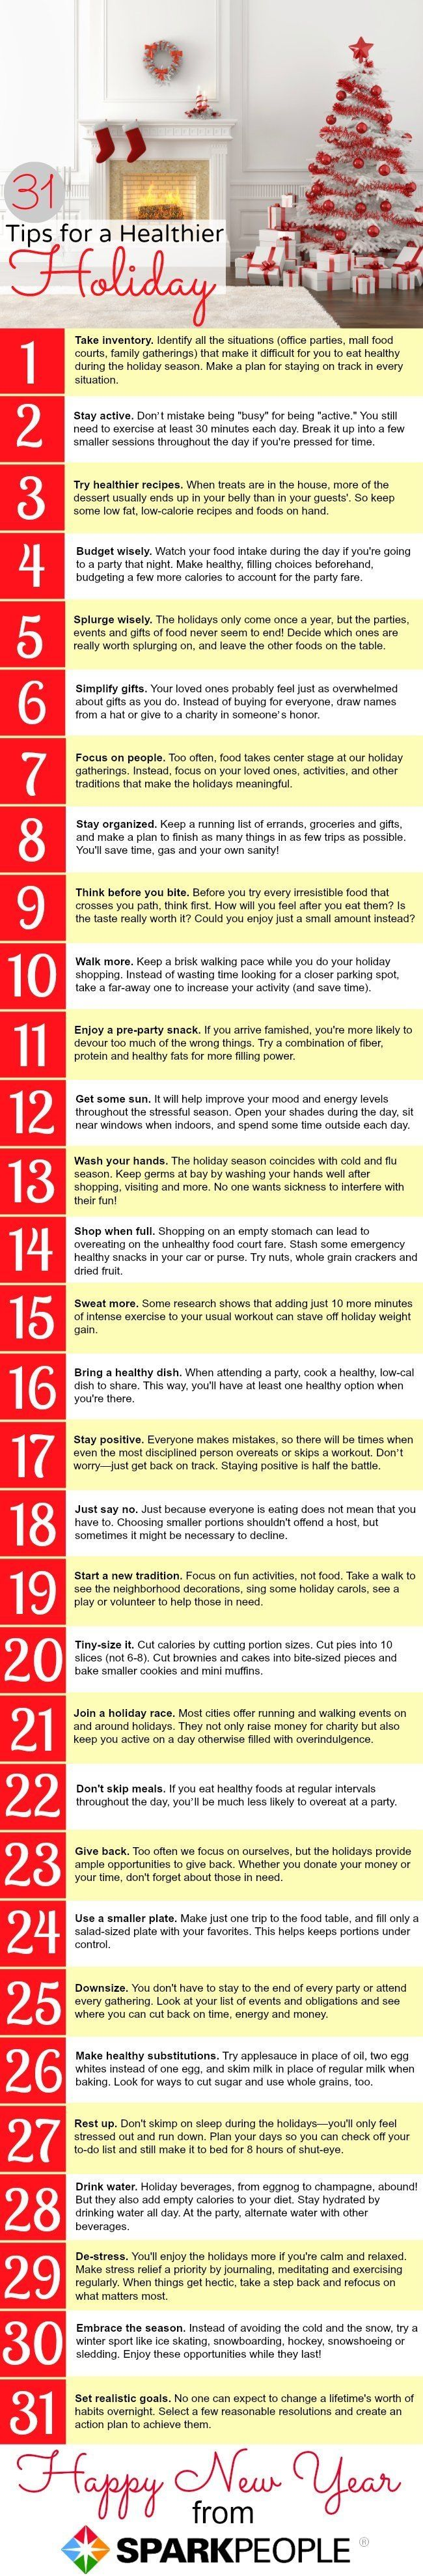 31 Tips For A Healthier Christmas Get A Carbon Monoxide